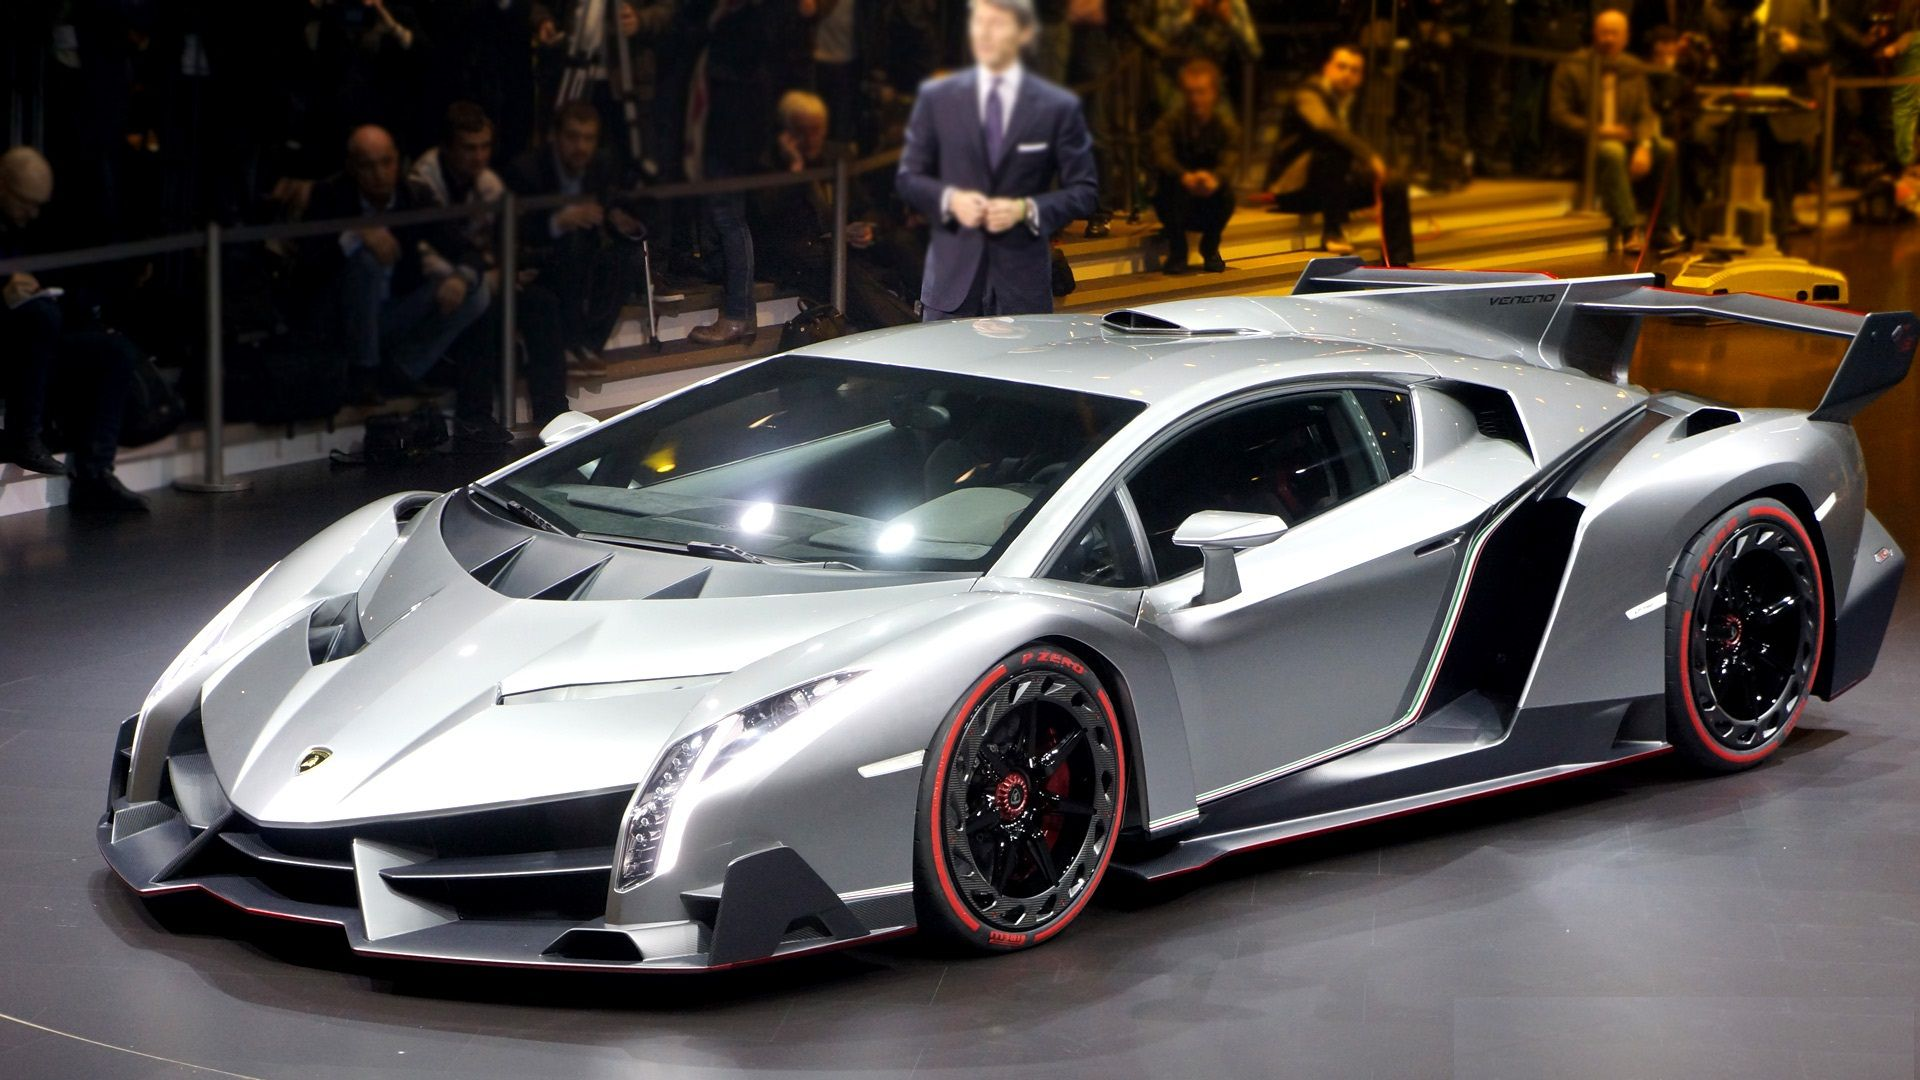 lamborghini veneno hd wallpapers backgrounds wallpaper 1013×633